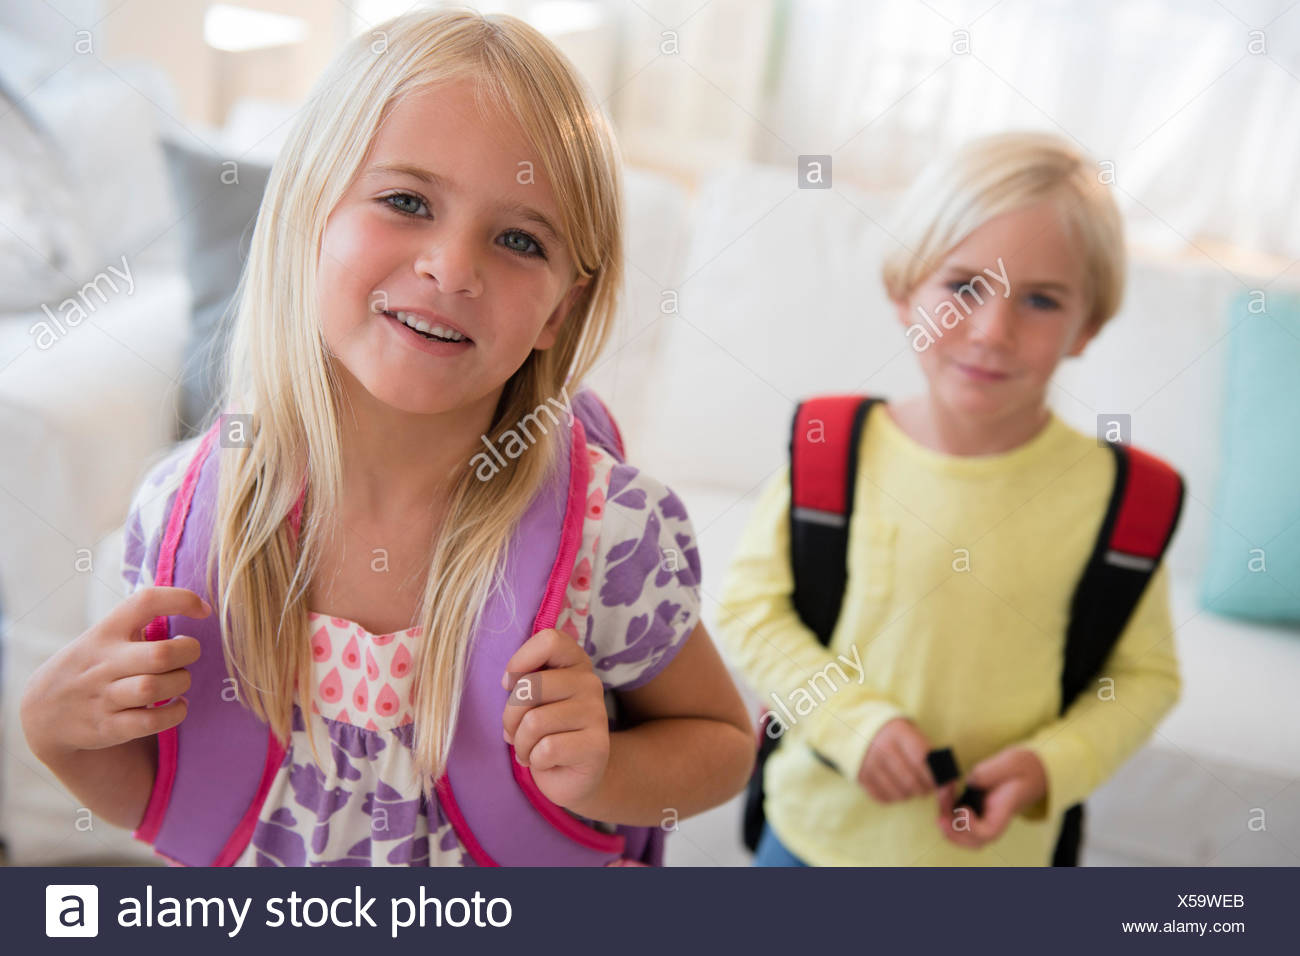 Boy (4-5) and girl (6-7) with backpacks, looking at camera - Stock Image